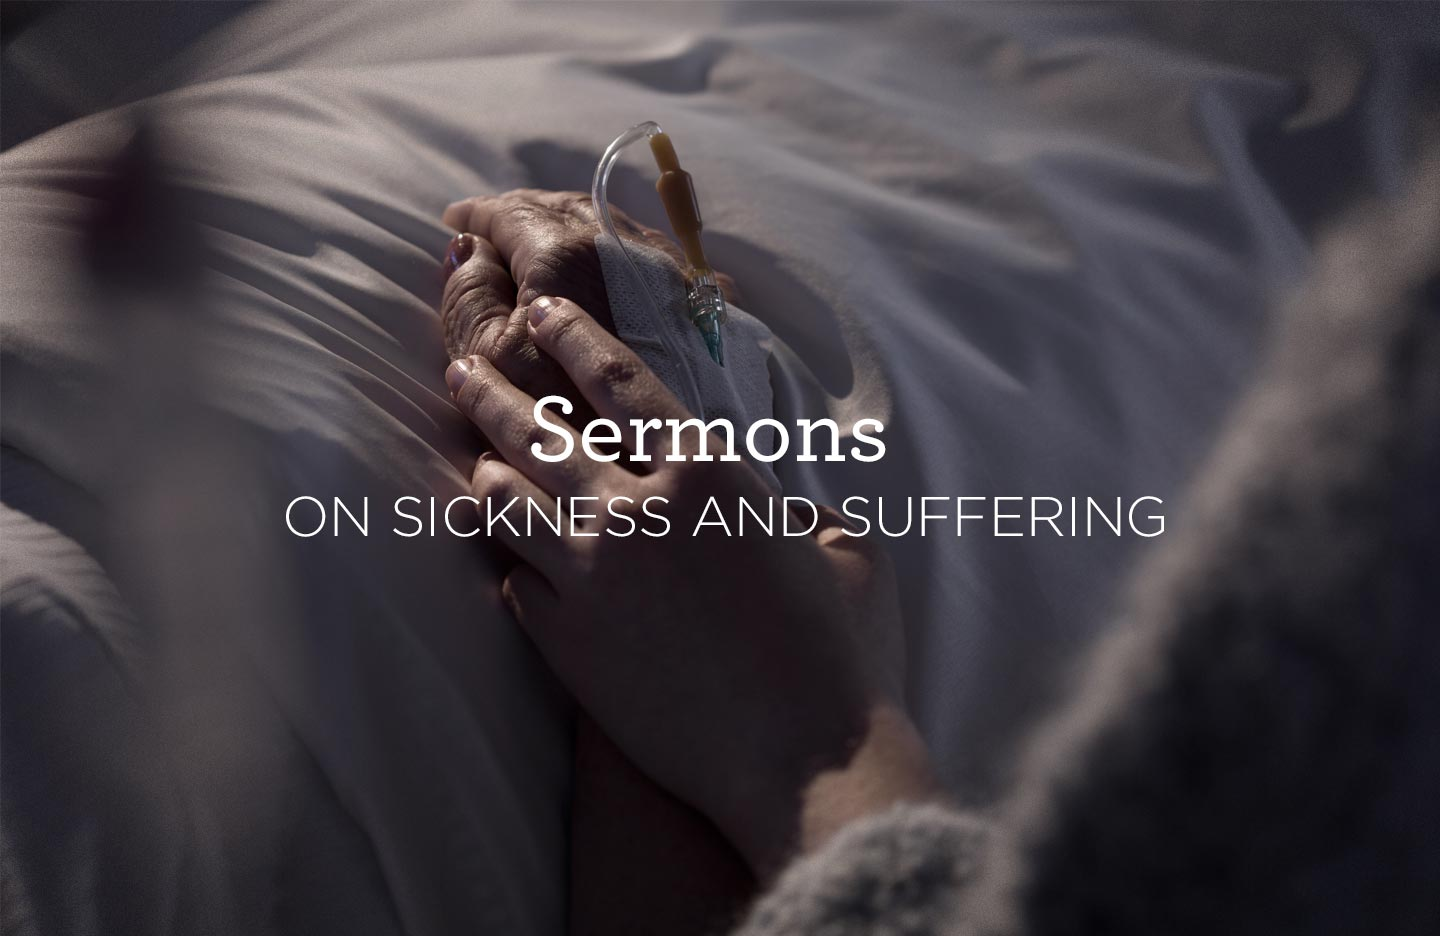 Sermons-on-Sickness-and-Suffering.jpg